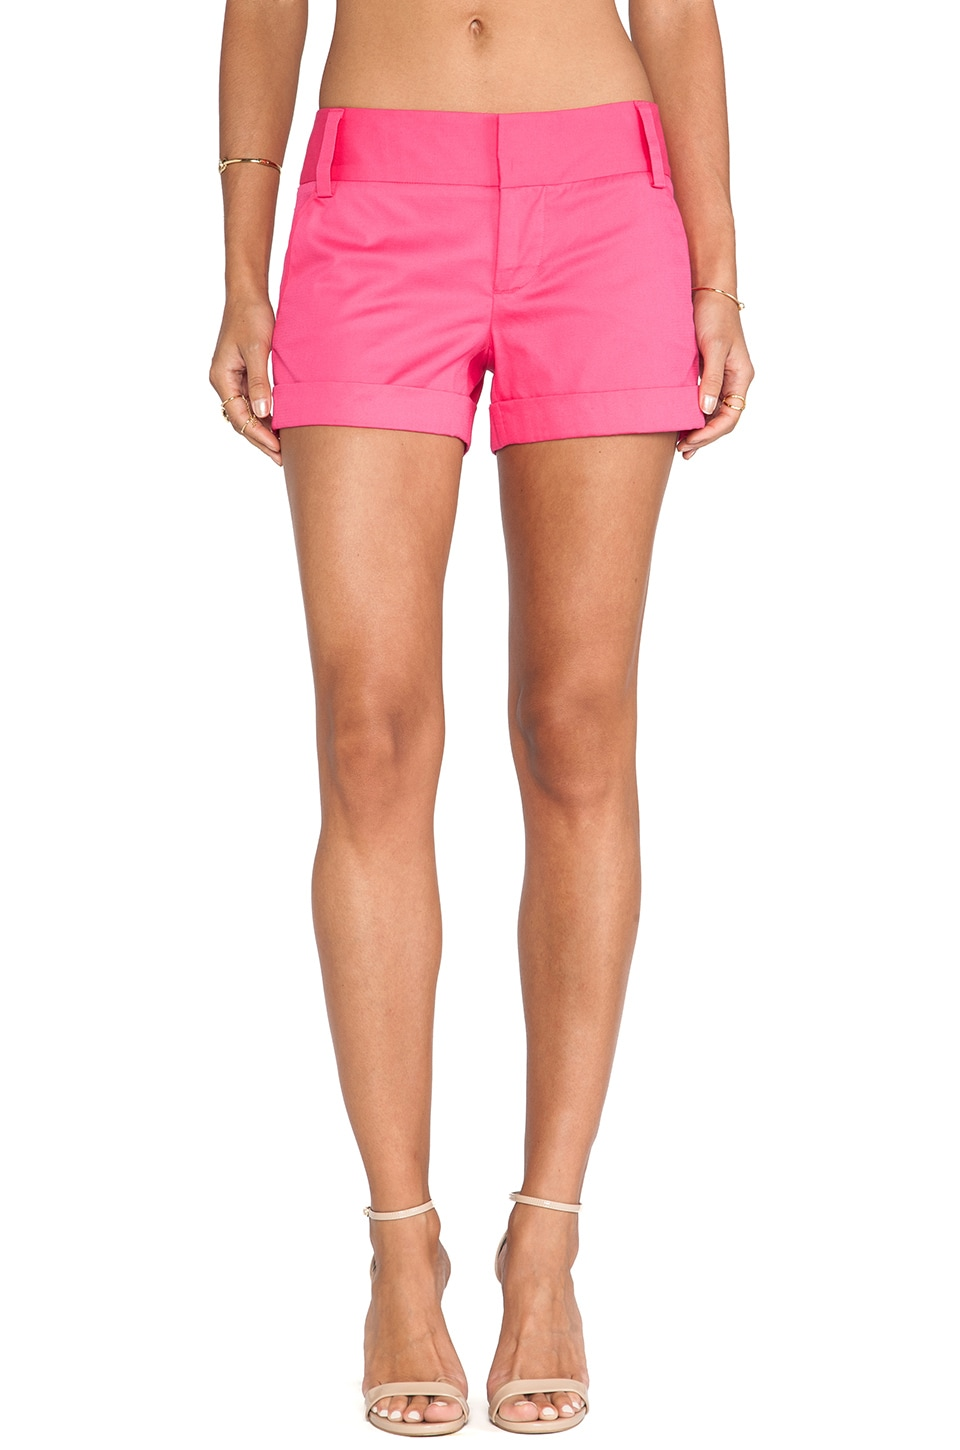 Alice + Olivia Cady Cuff Shorts in Fuchsia Pink Icing